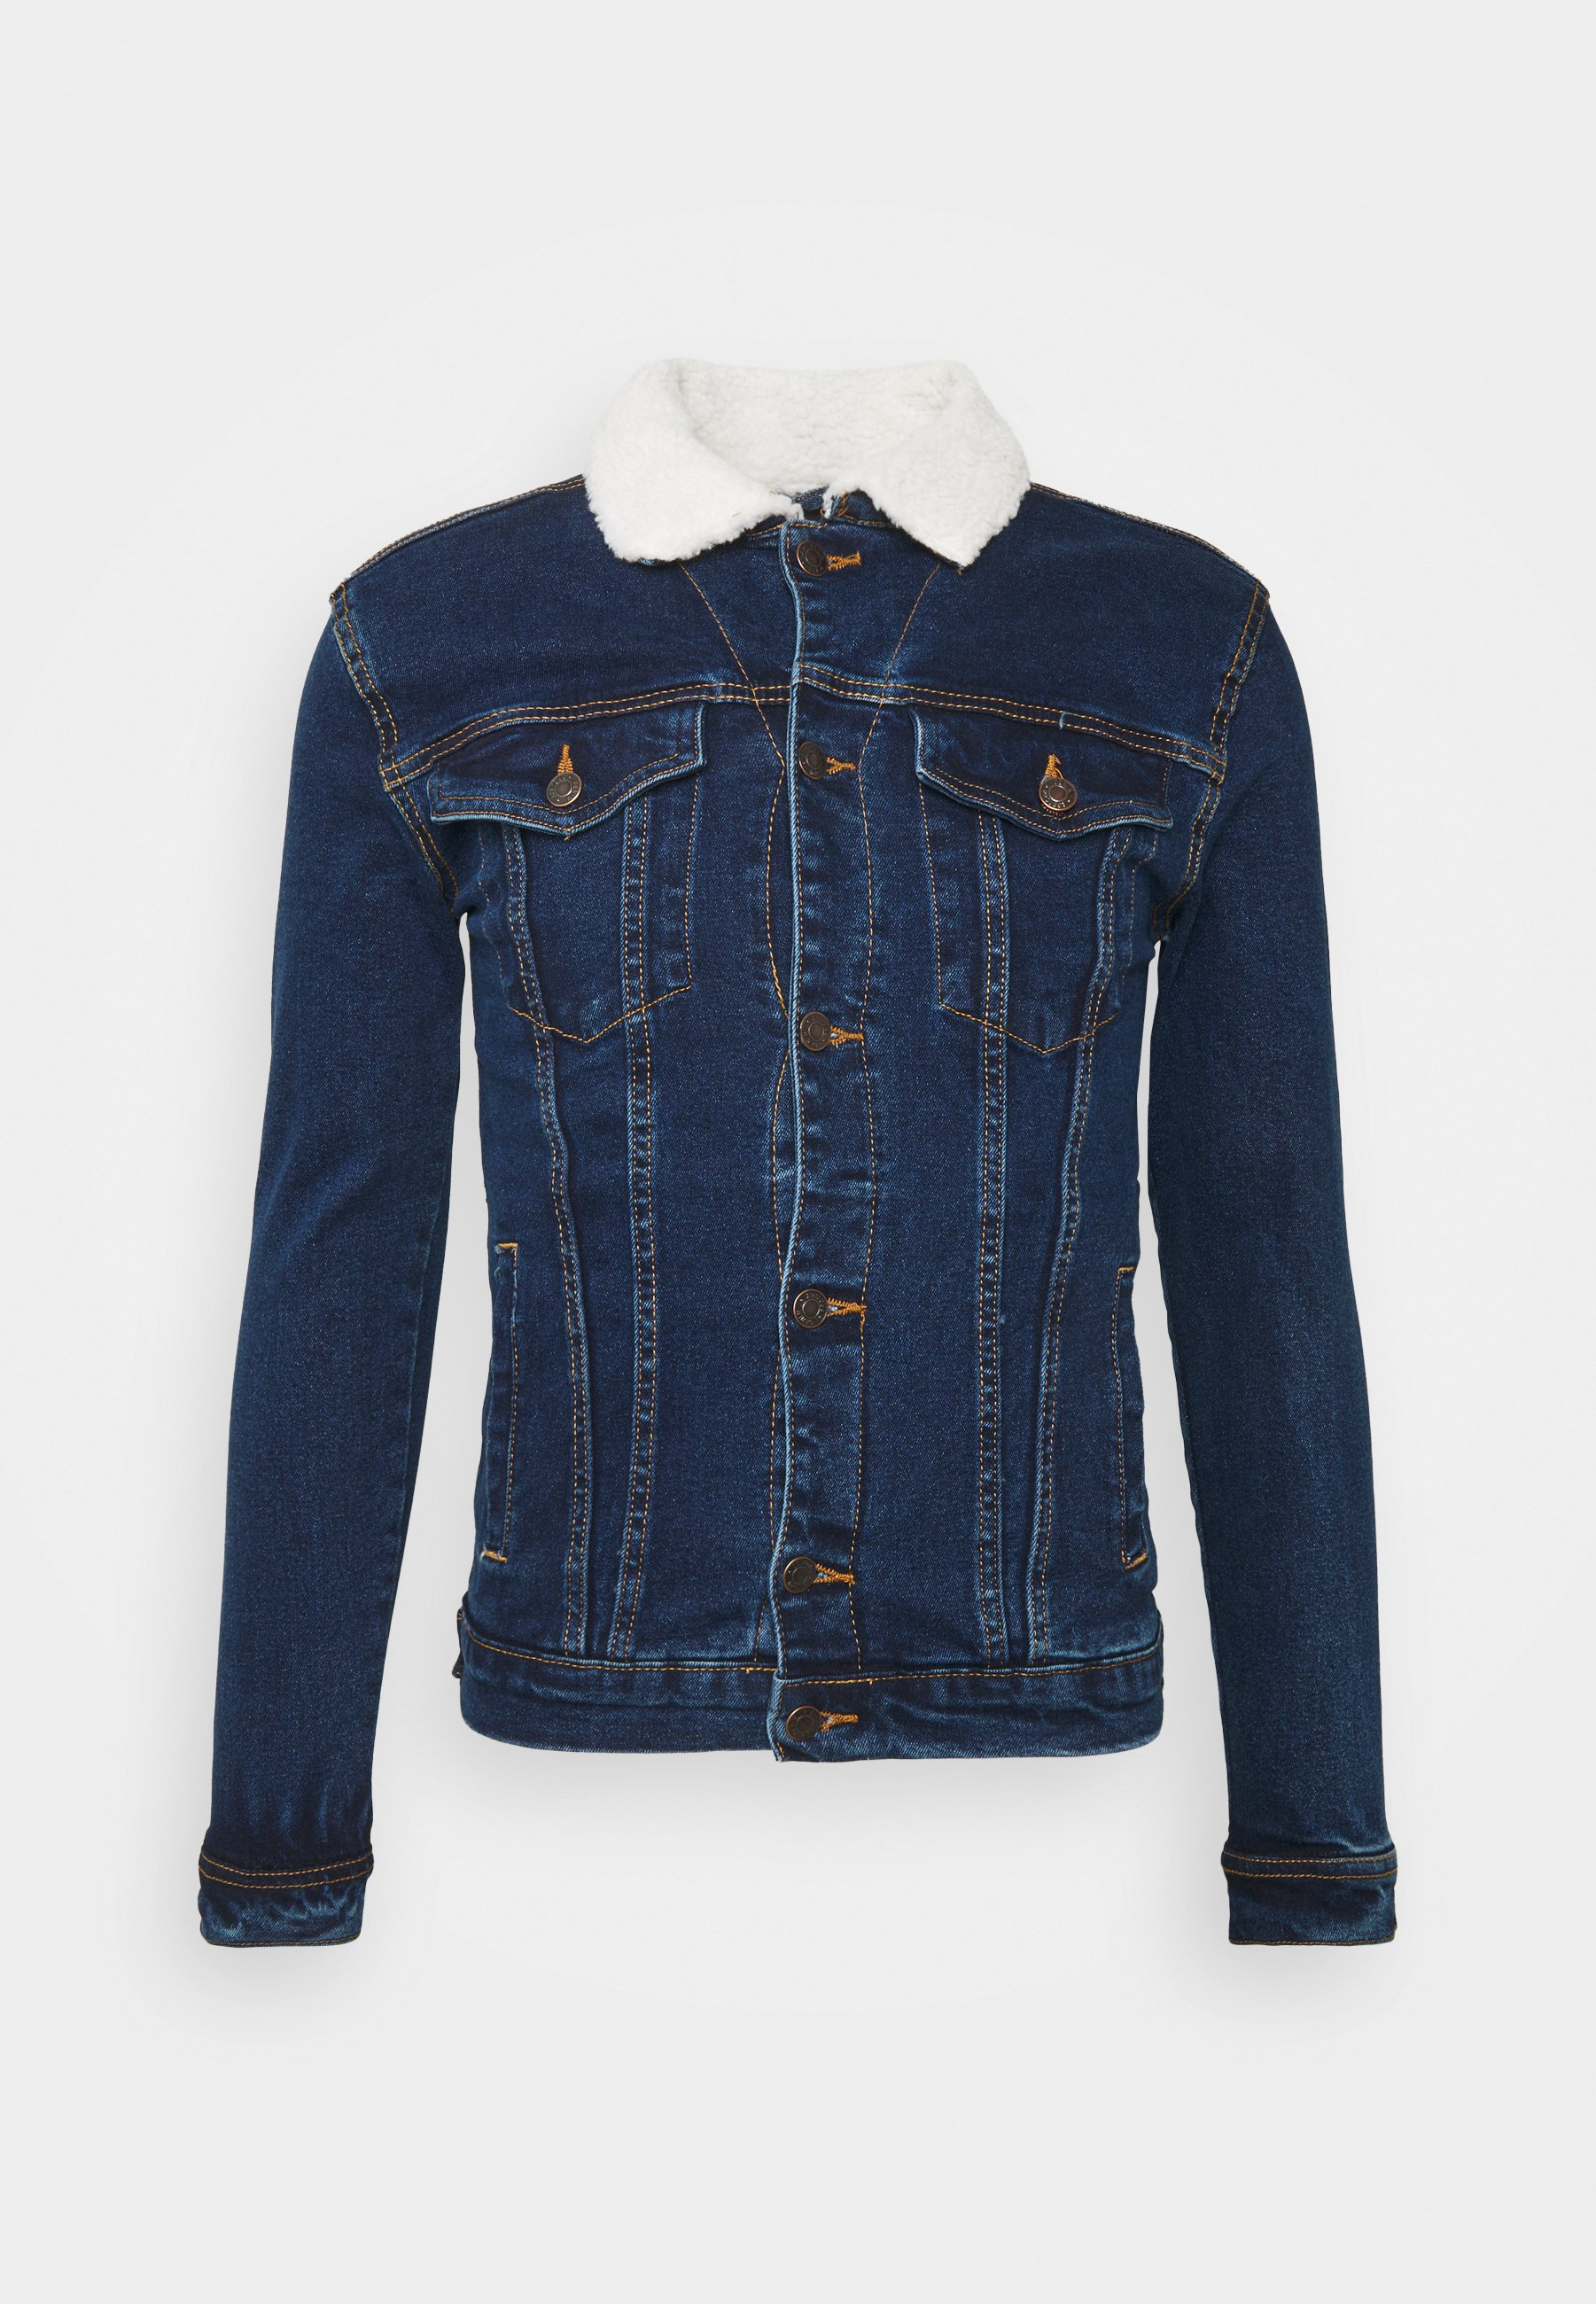 Denim Project Jackor Jeansjackor Kash Teddy Denim i svart